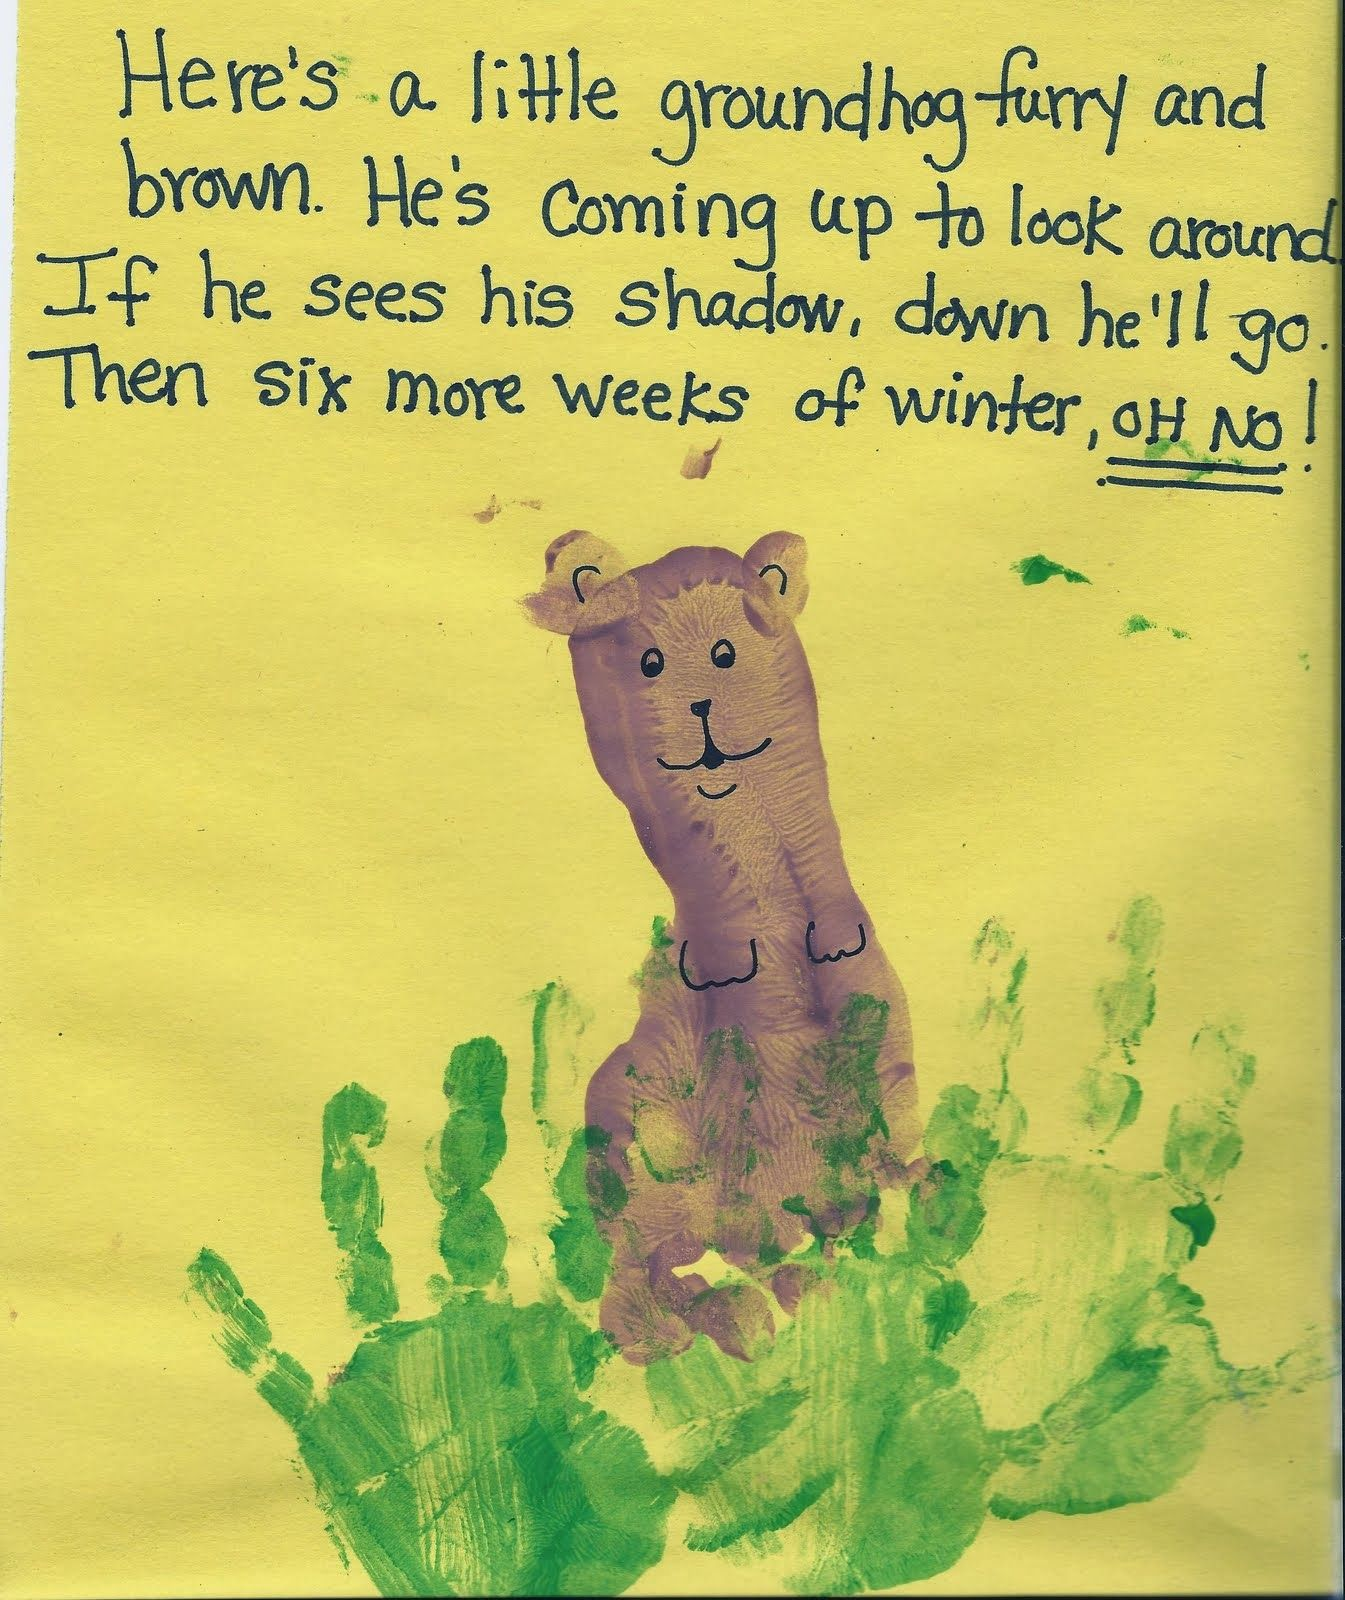 Groundhog Day Crafts For Kids Crafty Morning Kindergarten